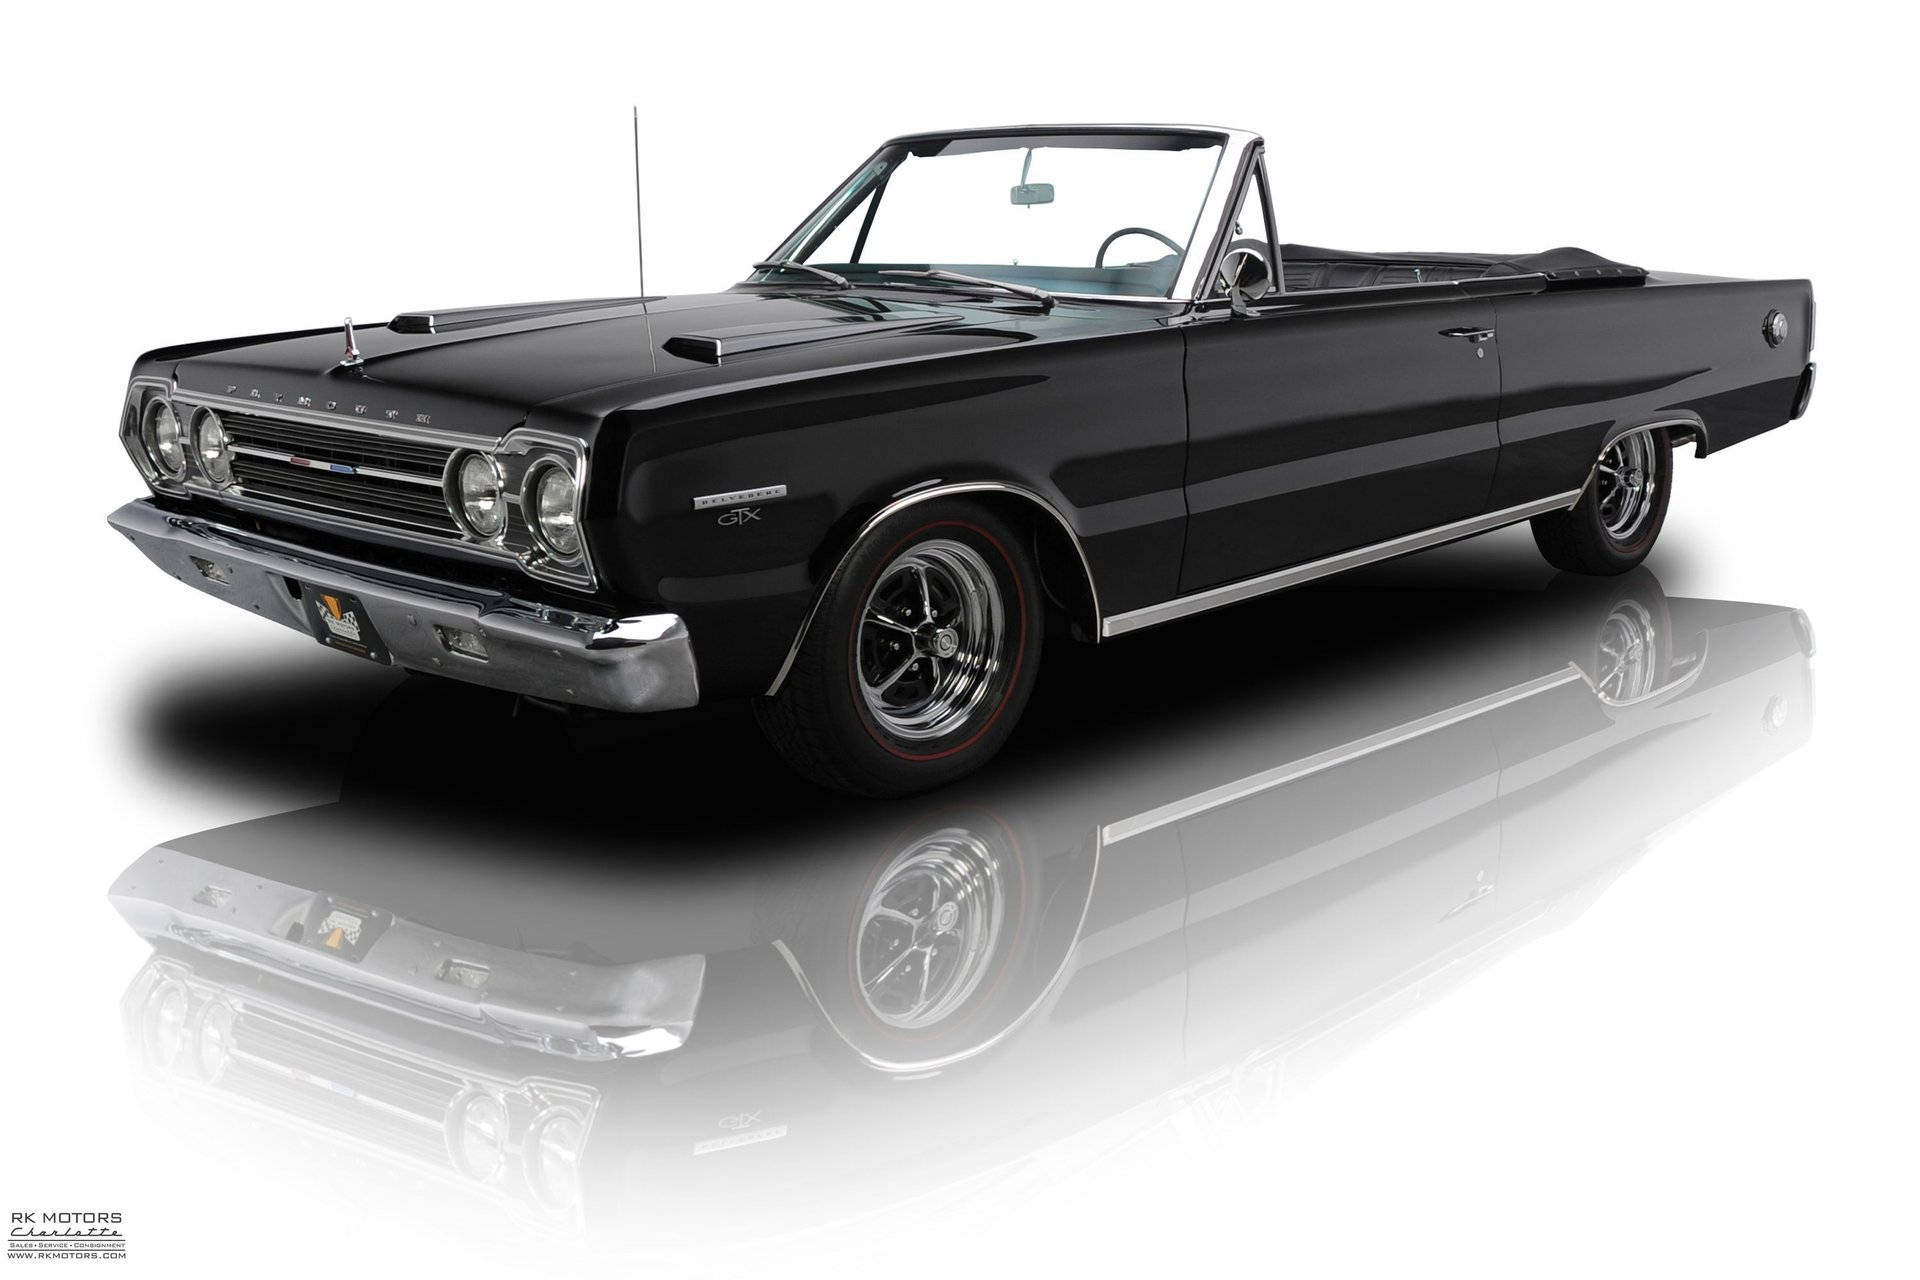 132354 1967 Plymouth Belvedere RK Motors Classic Cars for Sale